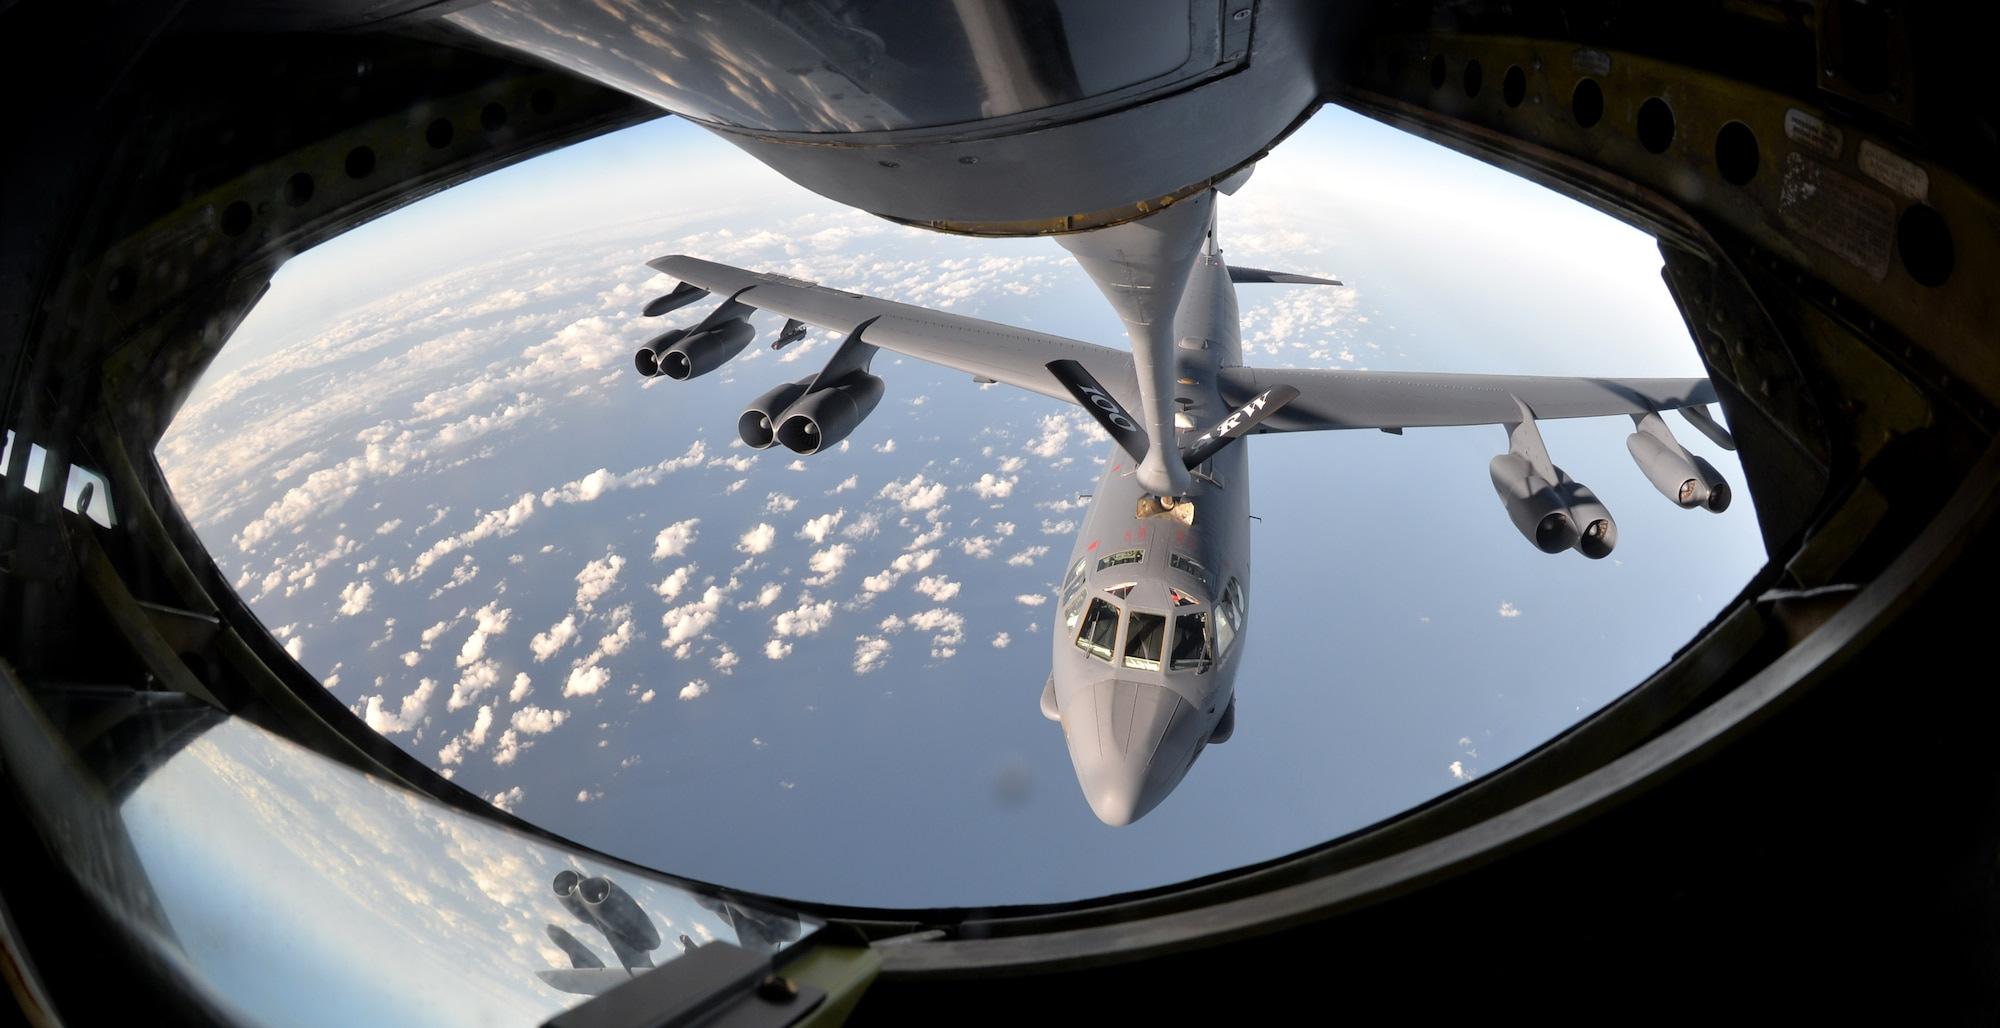 A B-52 Stratofortress from Barksdale Air Force Base, La., takes fuel from a KC-135 Stratotanker assigned to the 100th Air Refueling Wing at RAF Mildenhall, England, Sept. 18, 2015, in the skies near Spain. The refueling was part of exercise Immediate Response, which included a three-ship formation of KC-135s delivering a total of 180,000 pounds of fuel to the sole bomber. The KC-135 was designed and built during the Cold War specifically to deliver fuel to the B-52. (U.S. Air Force photo/Tech. Sgt. Austin M. May)